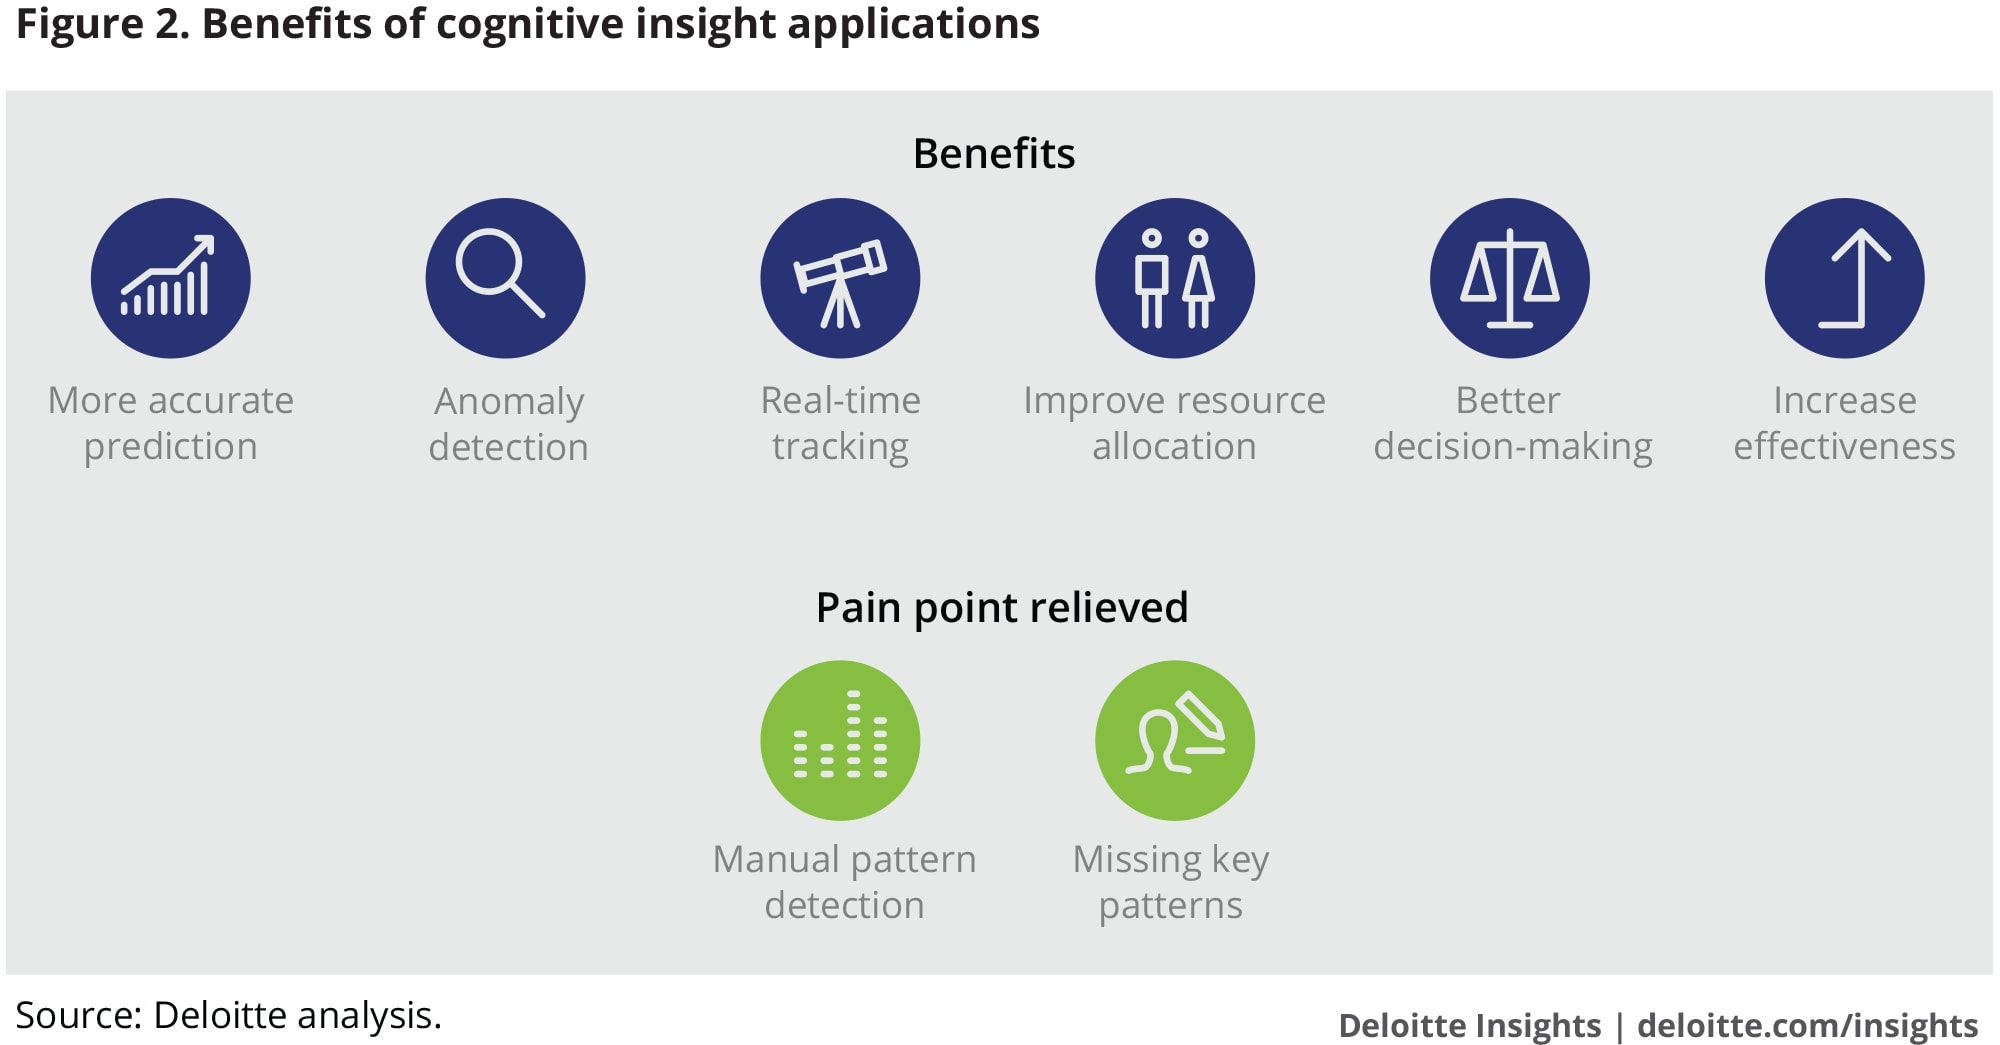 Benefits of cognitive insight applications